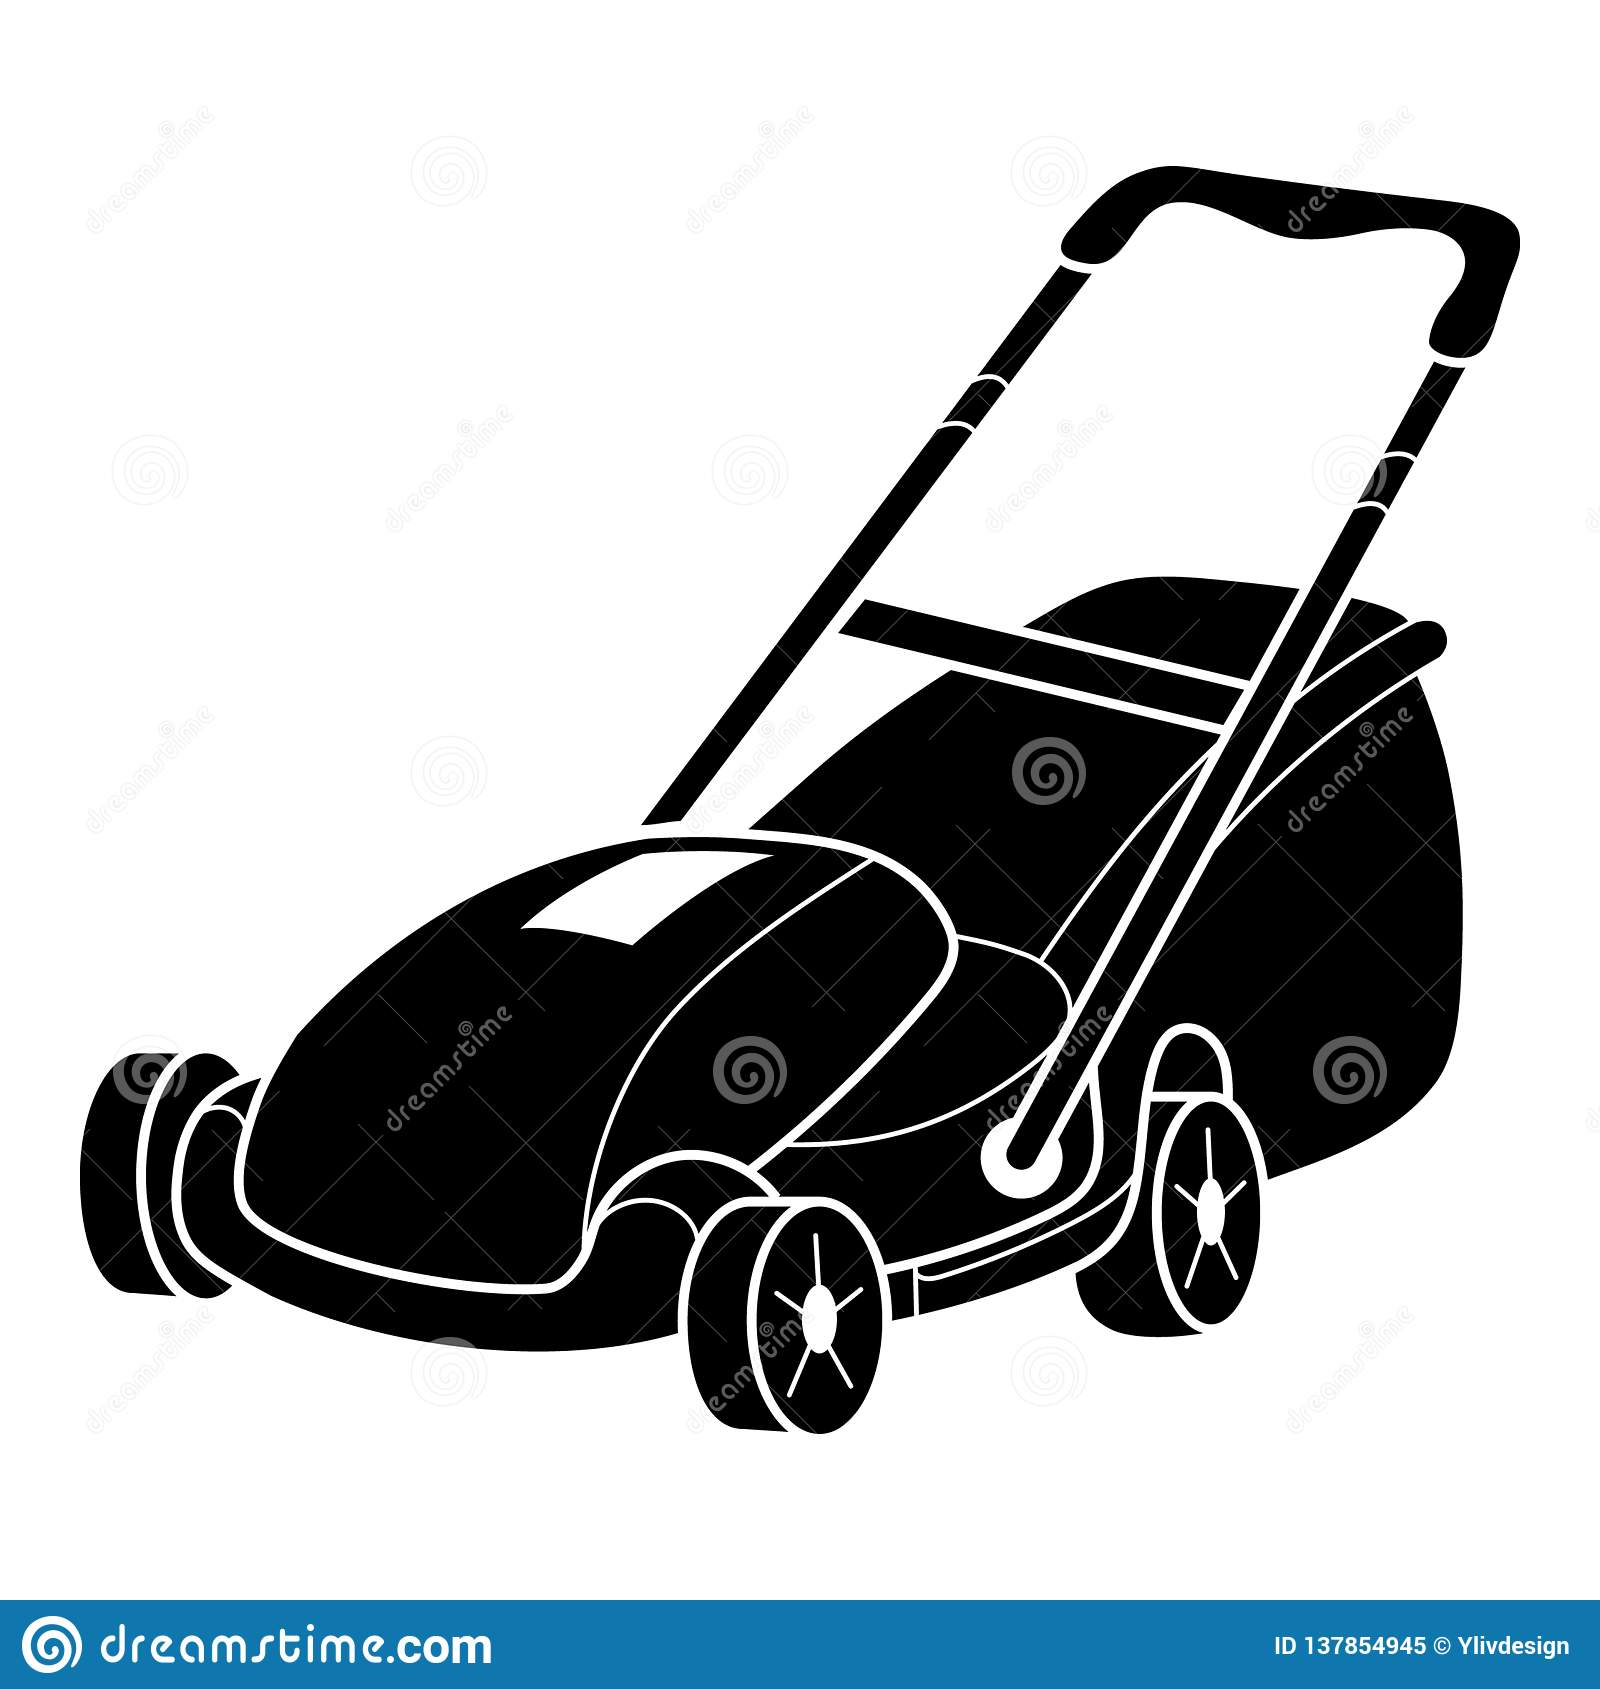 Lawn mower icon, simple style